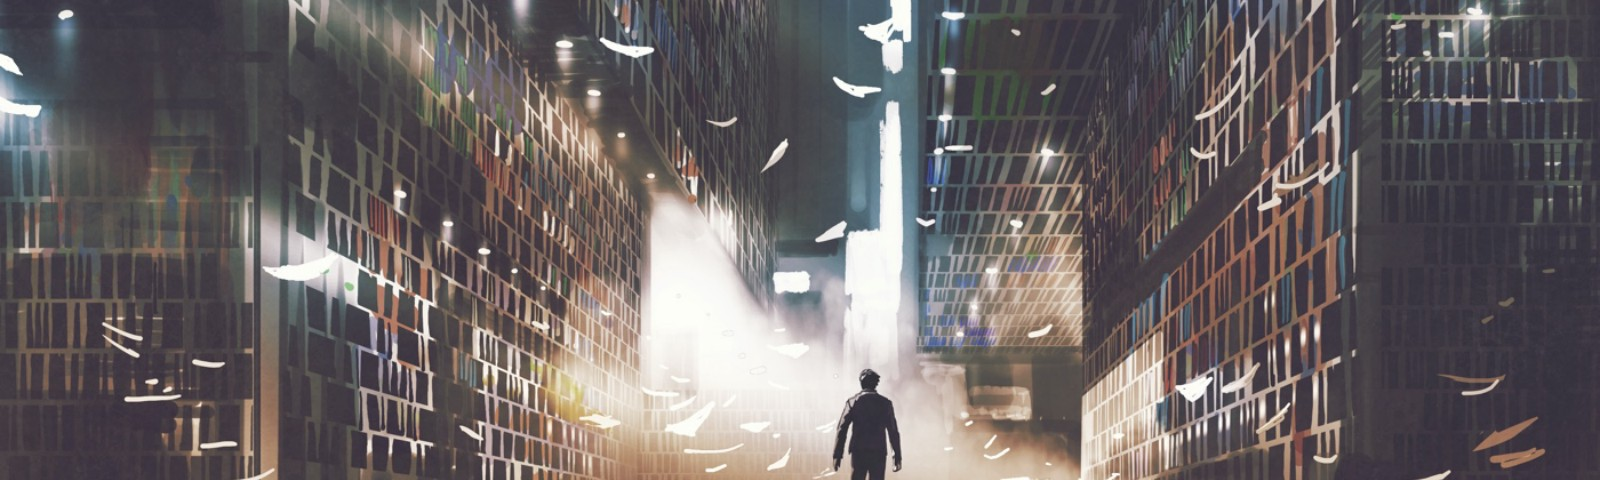 A figure walking into a vast library, pages flying through the air and falling around them.